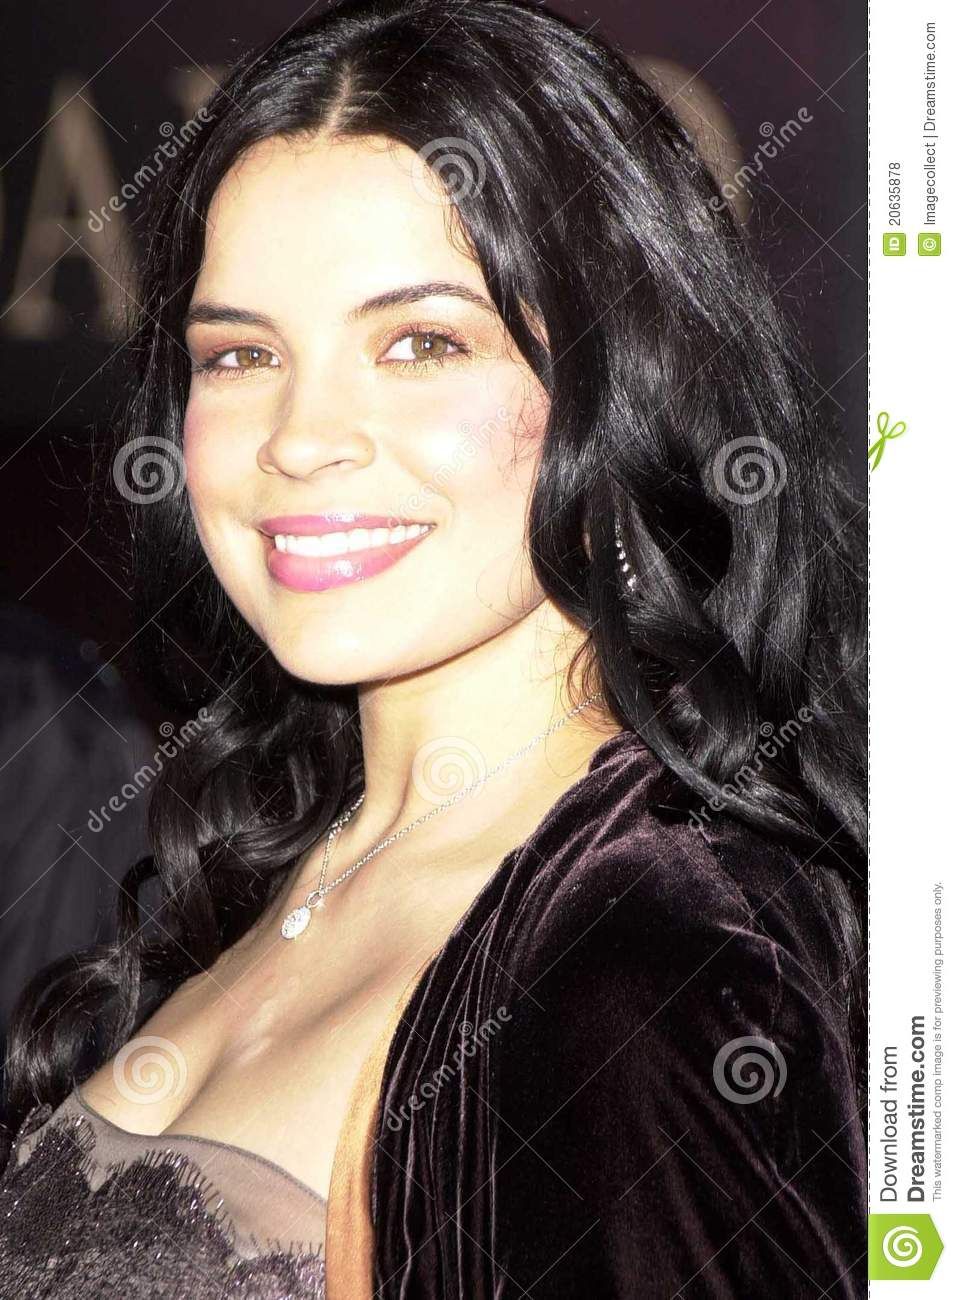 zuleikha robinson lostzuleikha robinson origine, zuleikha robinson images, zuleikha robinson photos, zuleikha robinson instagram, zuleikha robinson lost, zuleikha robinson the following, zuleikha robinson wiki, zuleikha robinson married, zuleikha robinson homeland, zuleikha robinson imdb